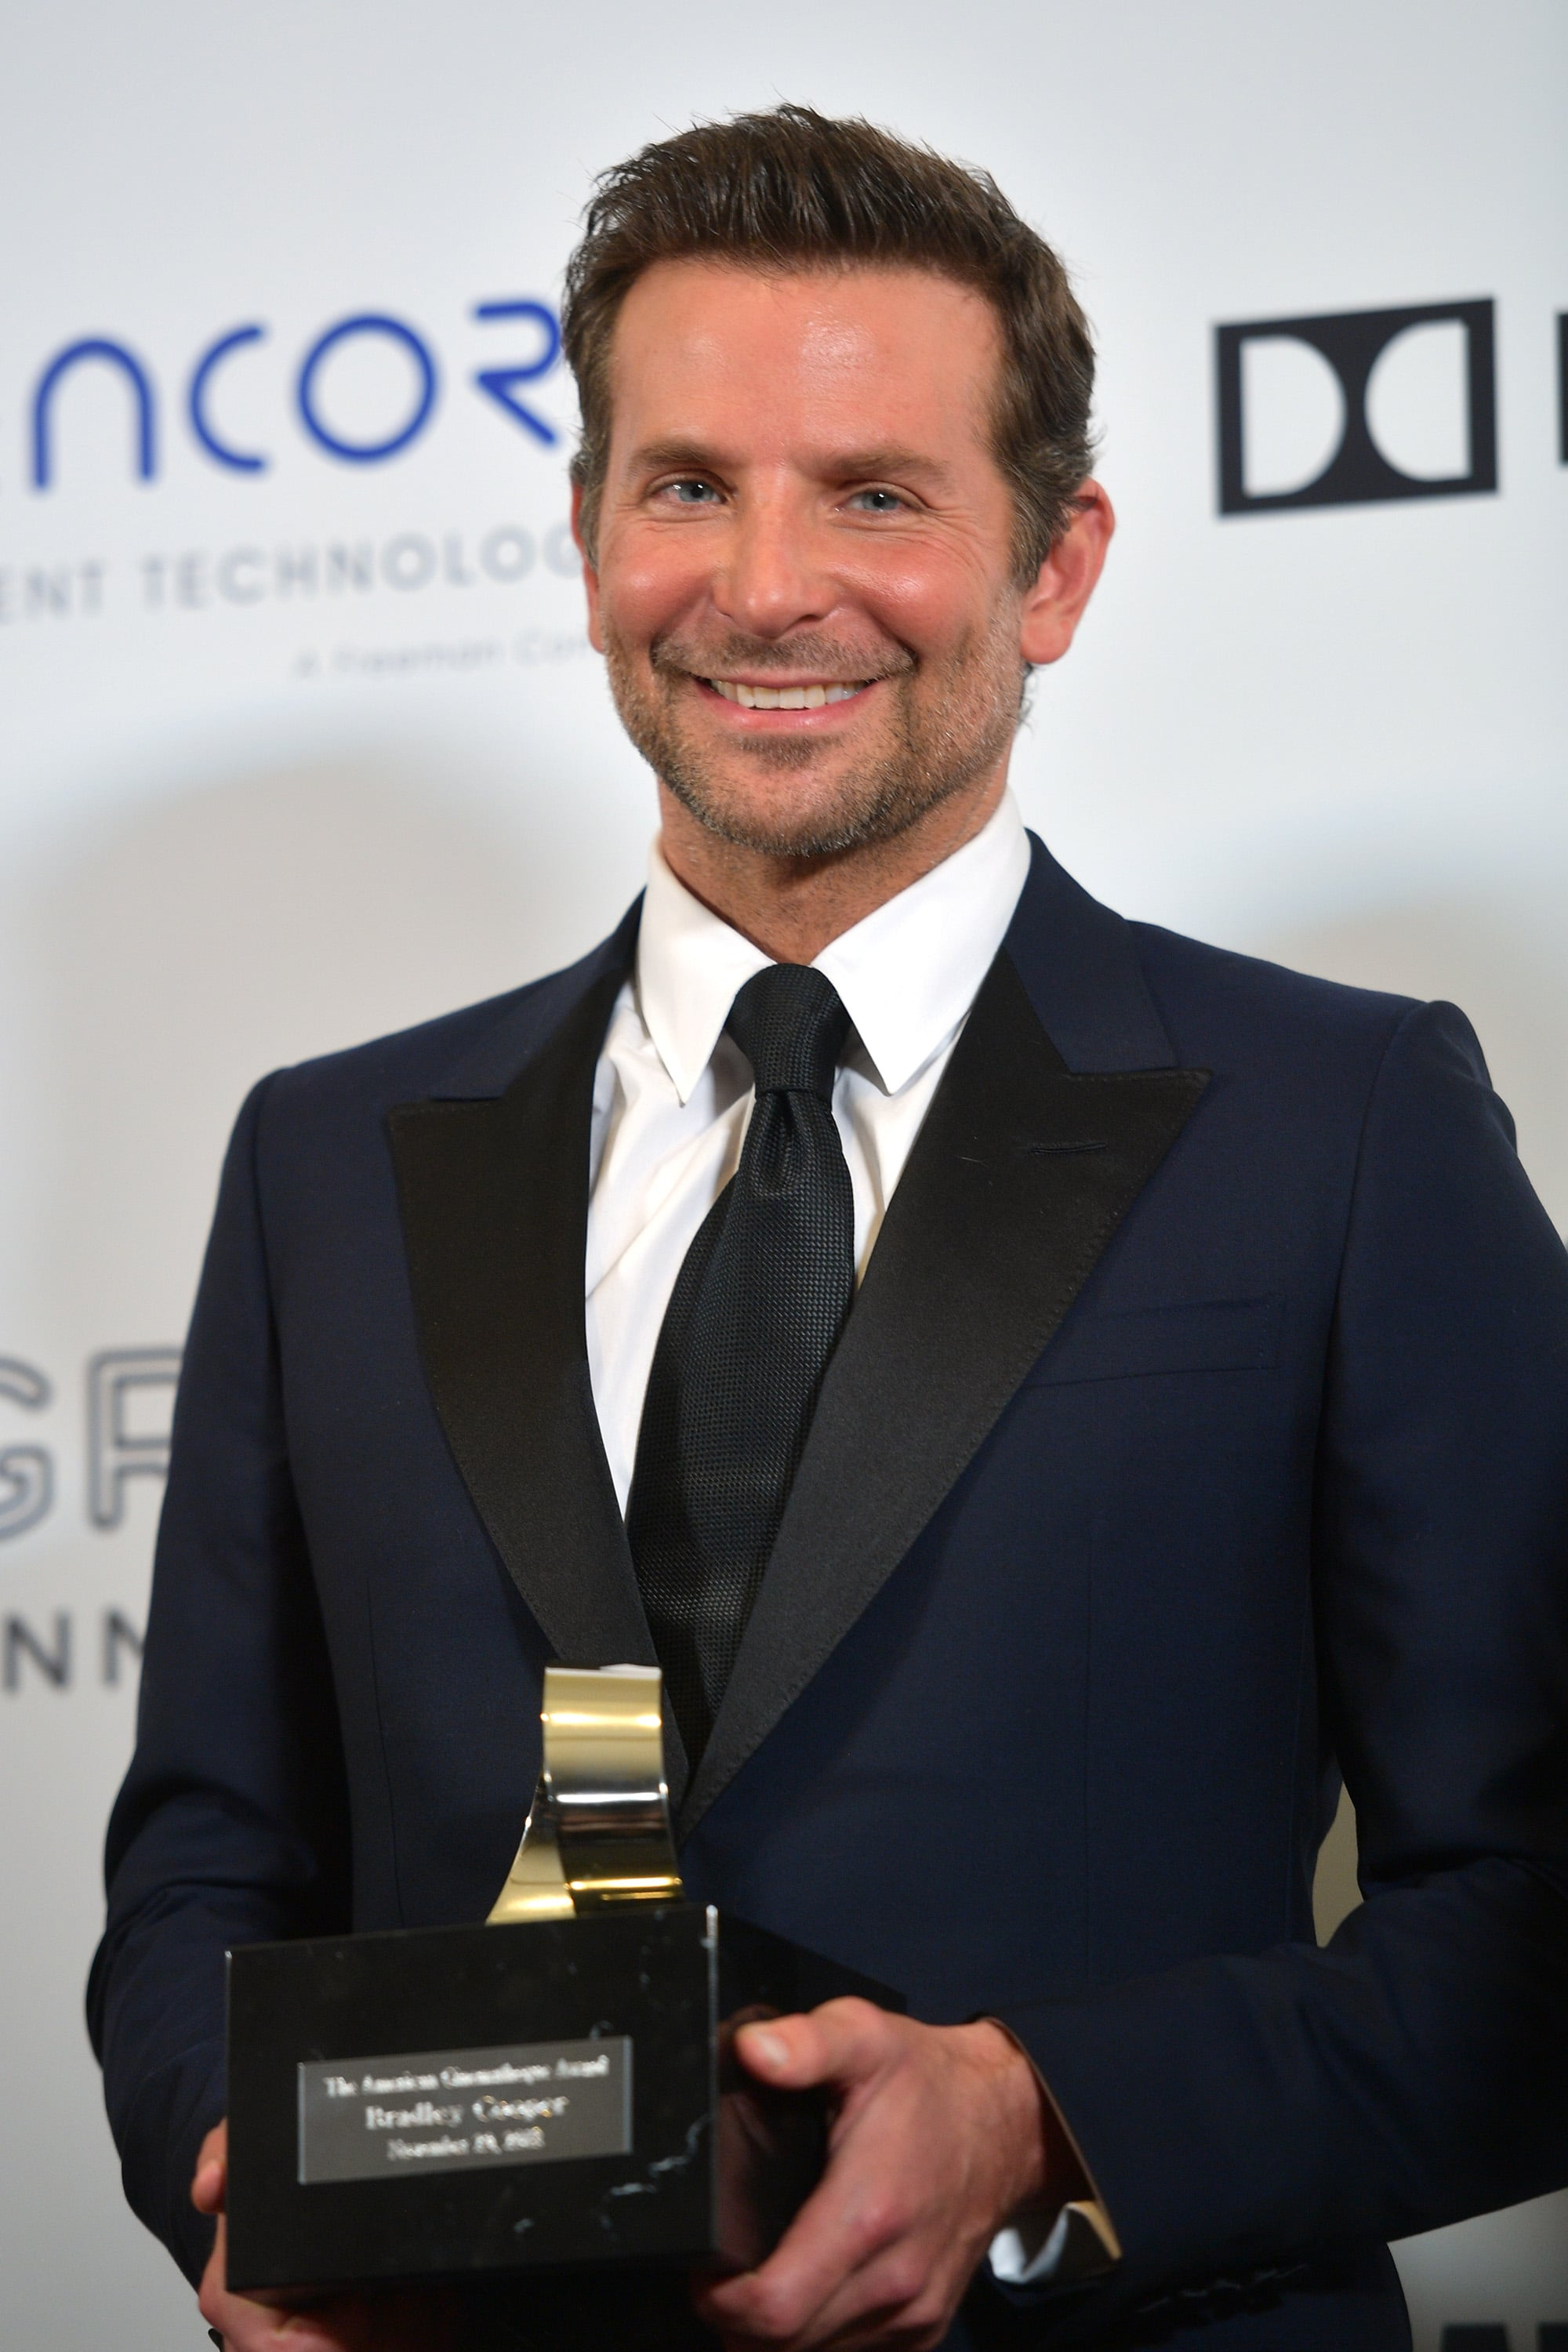 BEVERLY HILLS, CA - NOVEMBER 29:  American Cinematheque 2018 Award Recipient Bradley Cooper attends the 32nd American Cinematheque Award Presentation honouring Bradley Cooper at The Beverly Hilton Hotel on November 29, 2018 in Beverly Hills, California.  (Photo by Matt Winkelmeyer/Getty Images)